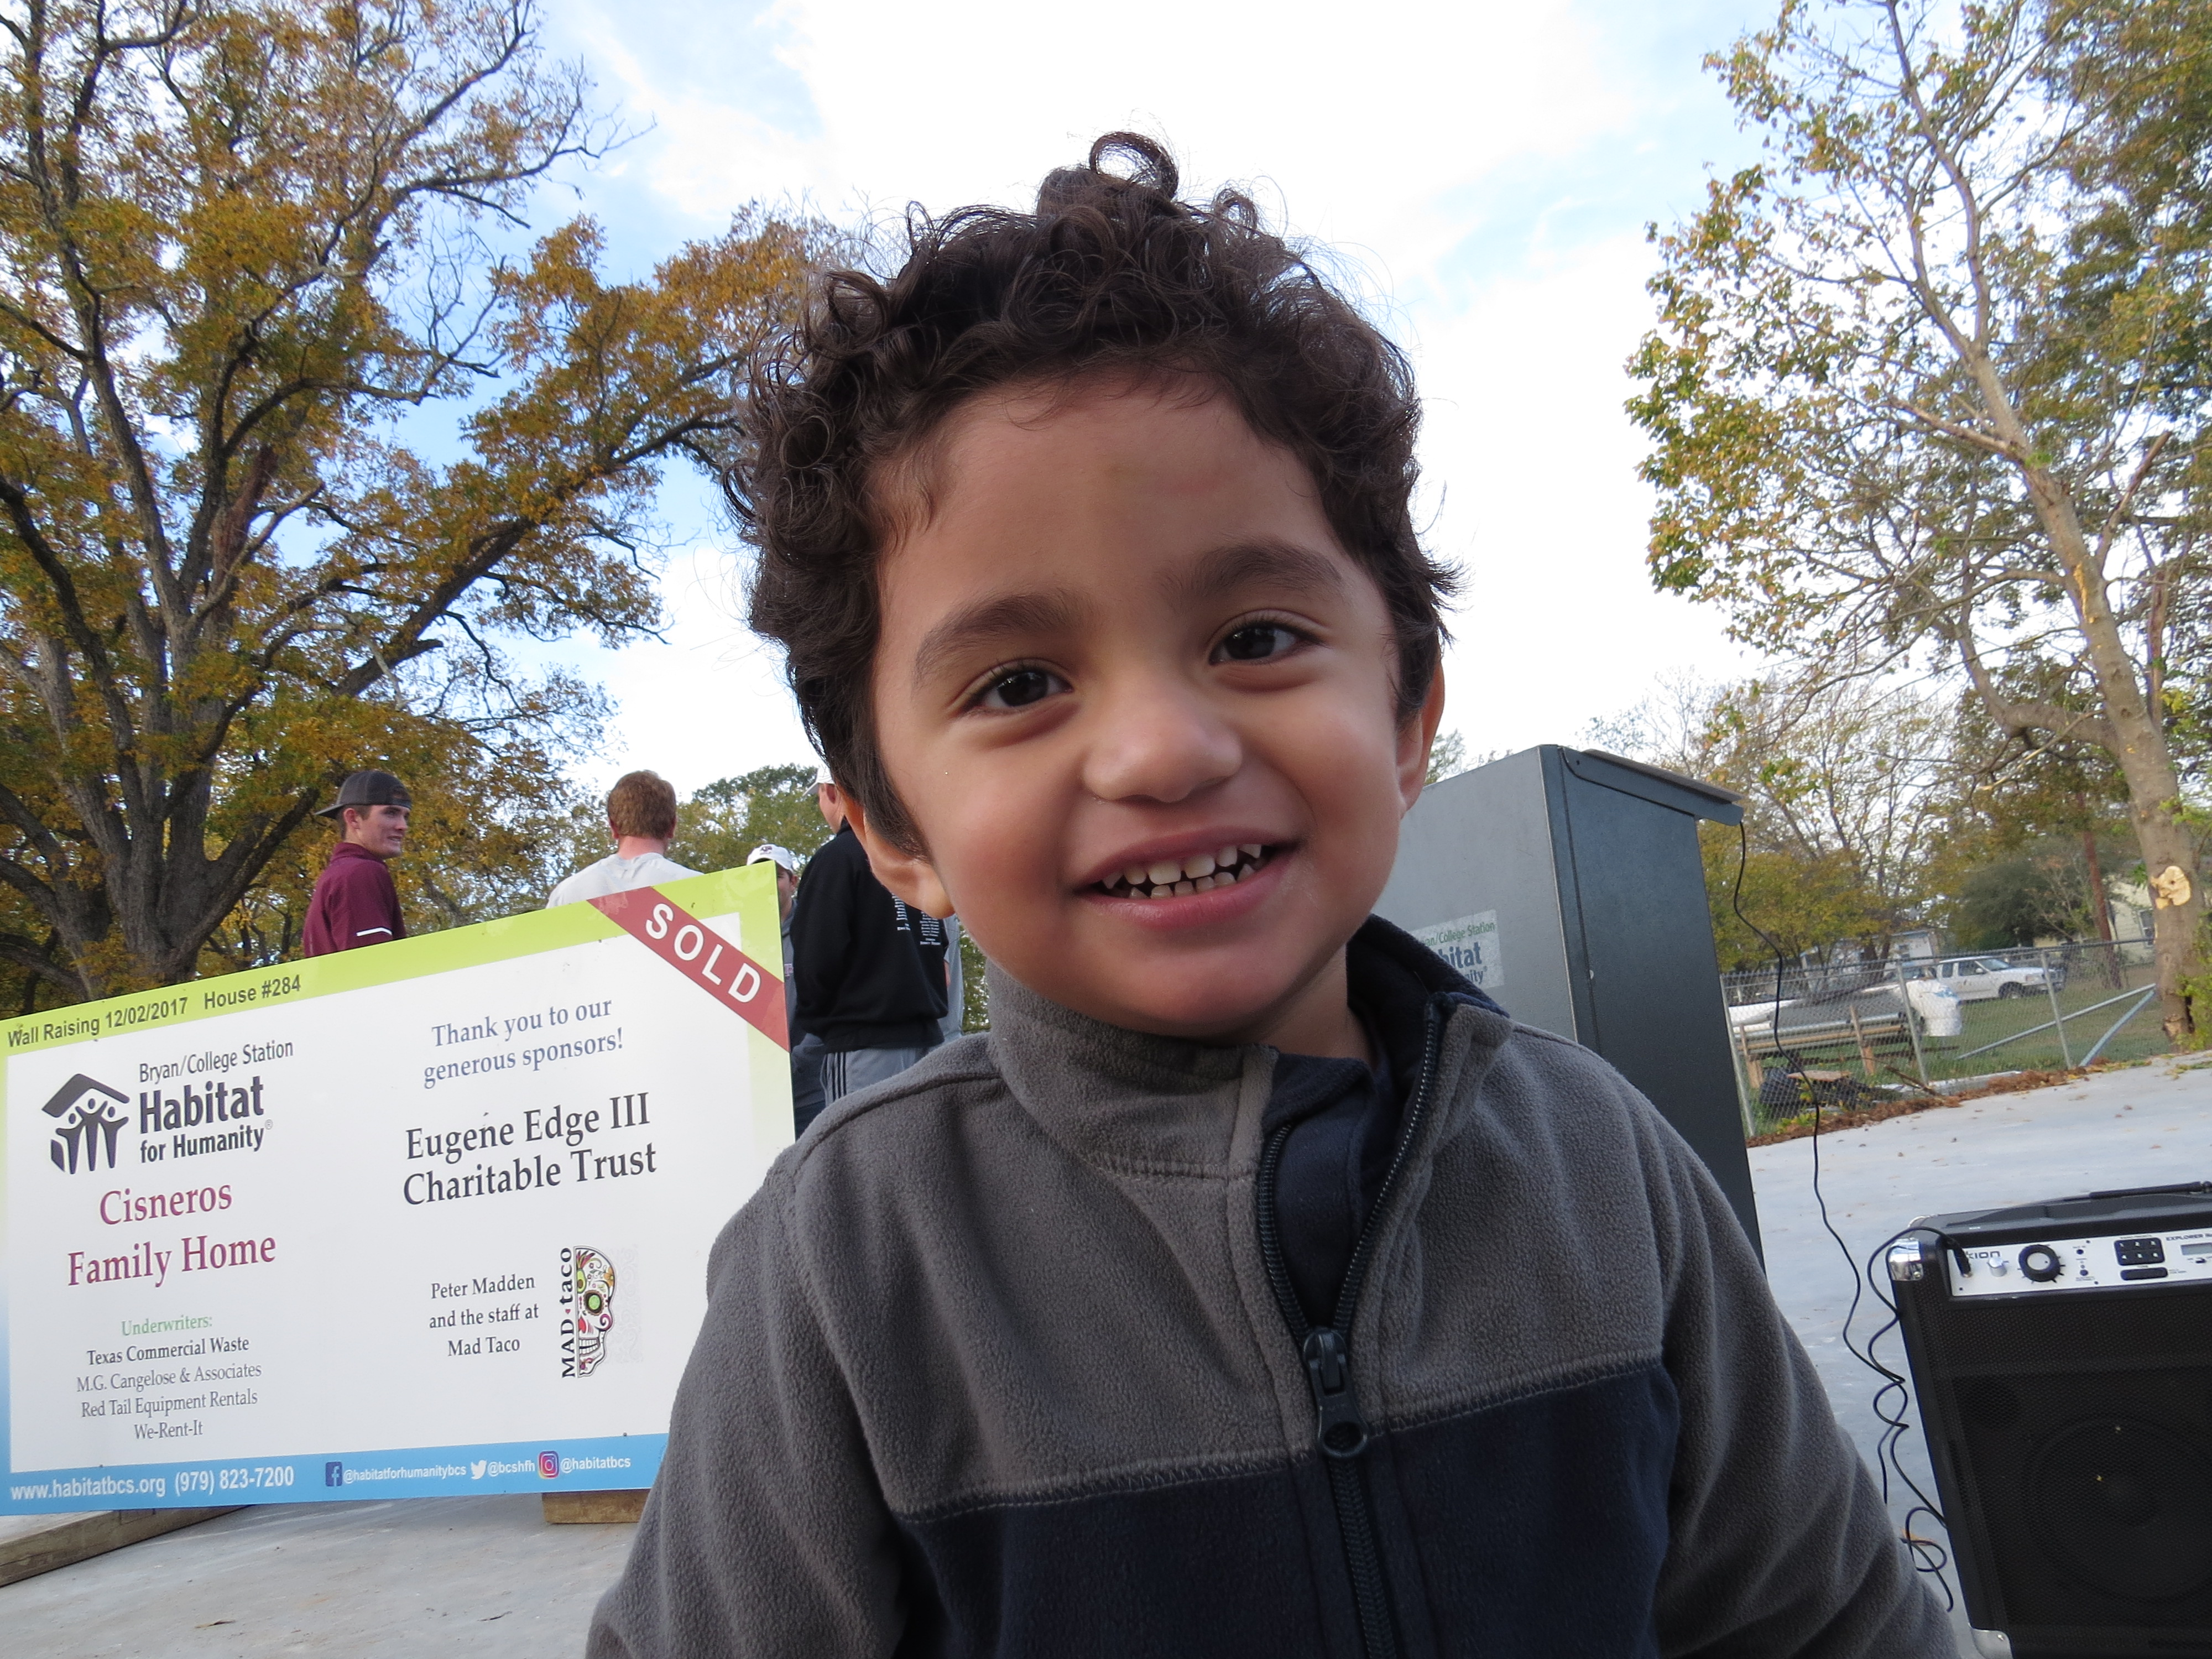 Cisneros' son smiles in front of their future Habitat for Humanity home.